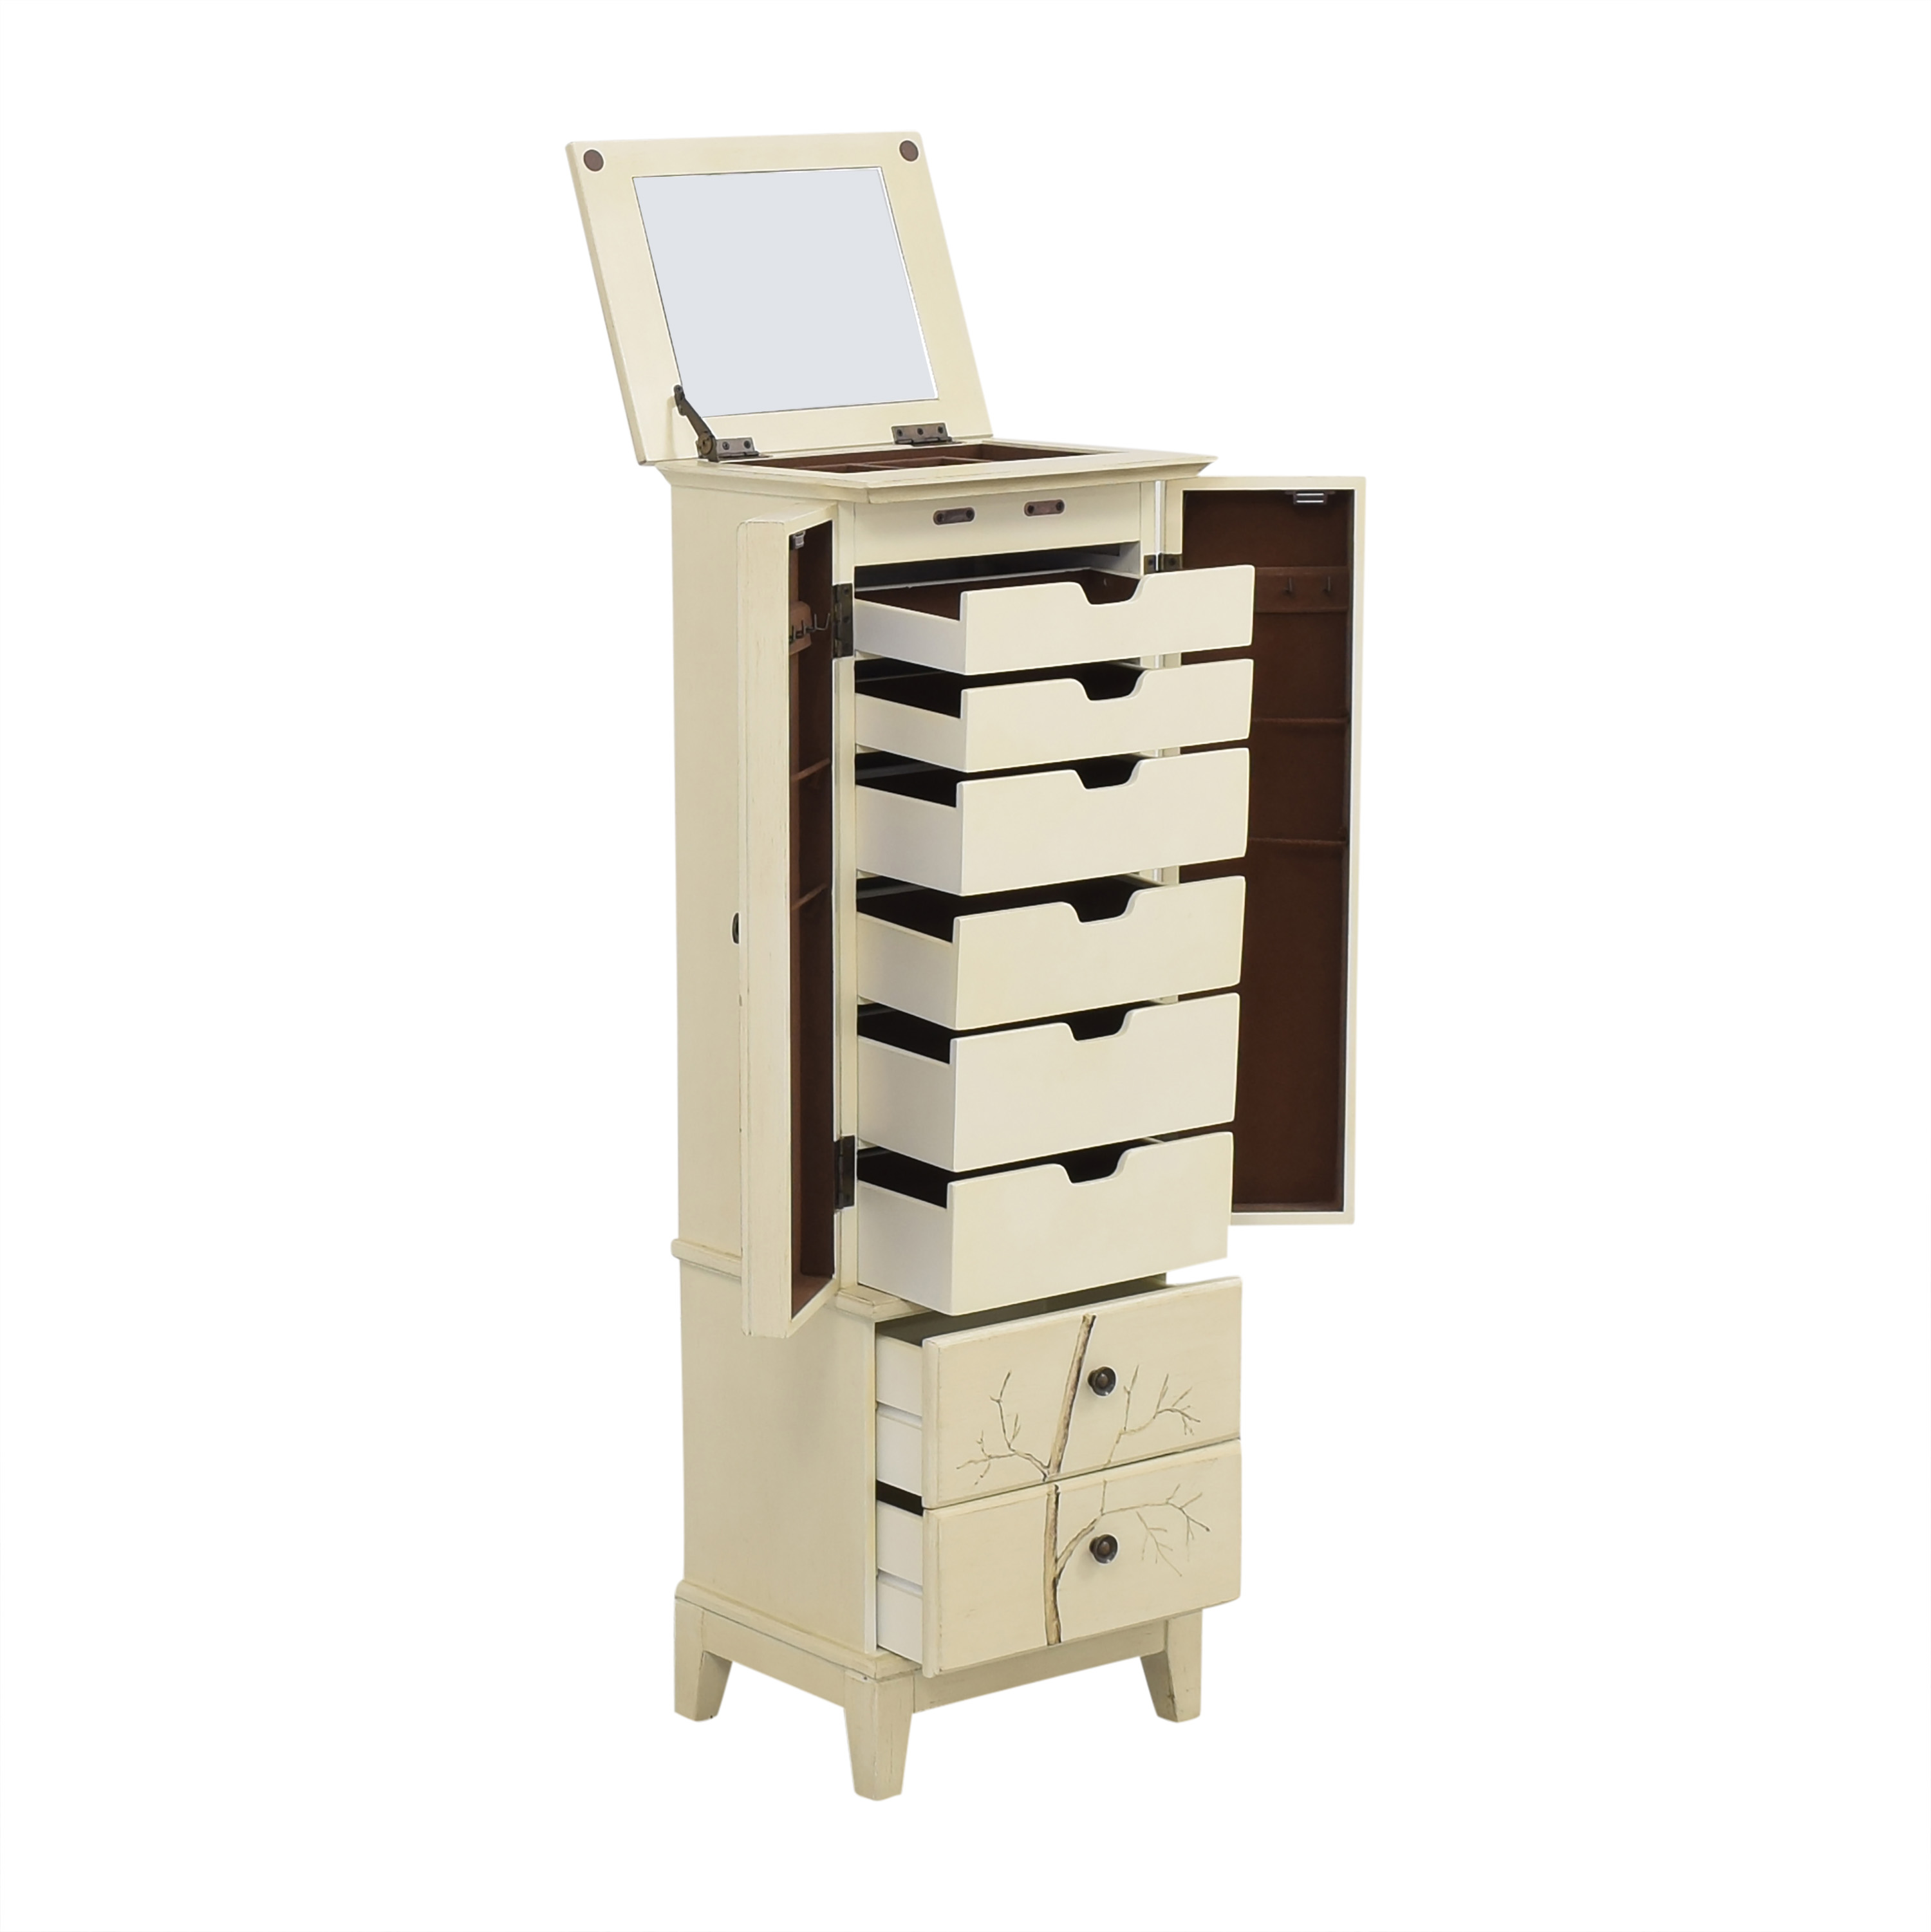 Home Decorators Collection Home Decorators Collection Chirp Jewelry Armoire on sale